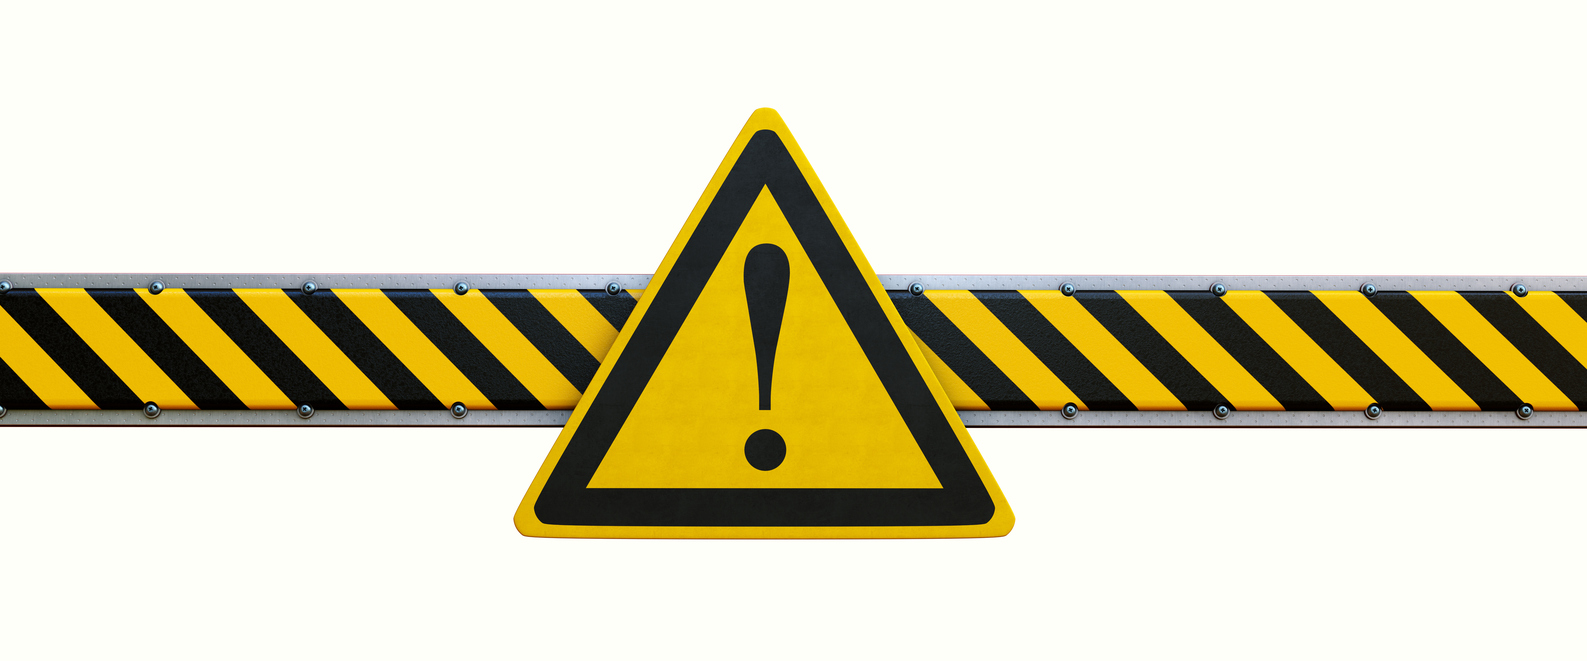 Frontal view on a simple security barrier with a warning exclamation sign, isolated on pure white background. The image is suited for further compositing and derivation.